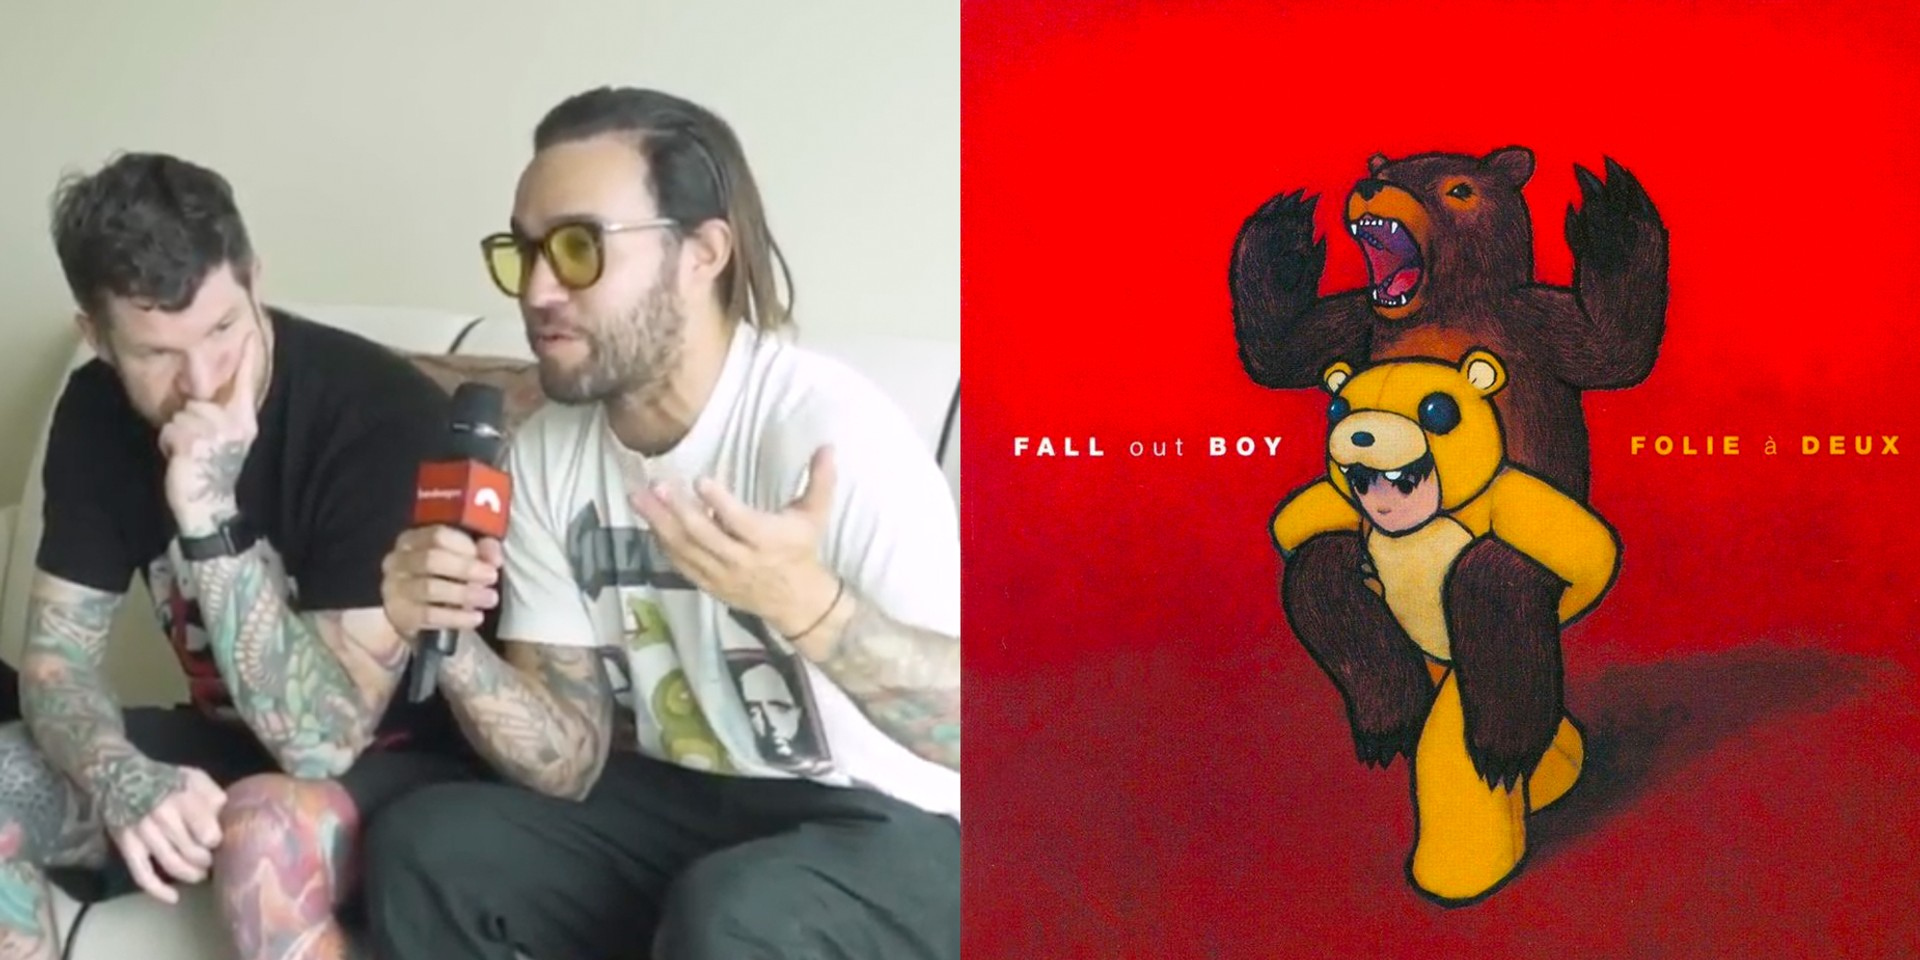 Pete and Andy of Fall Out Boy discuss their album Folie à Deux, which turns 10 this year – watch